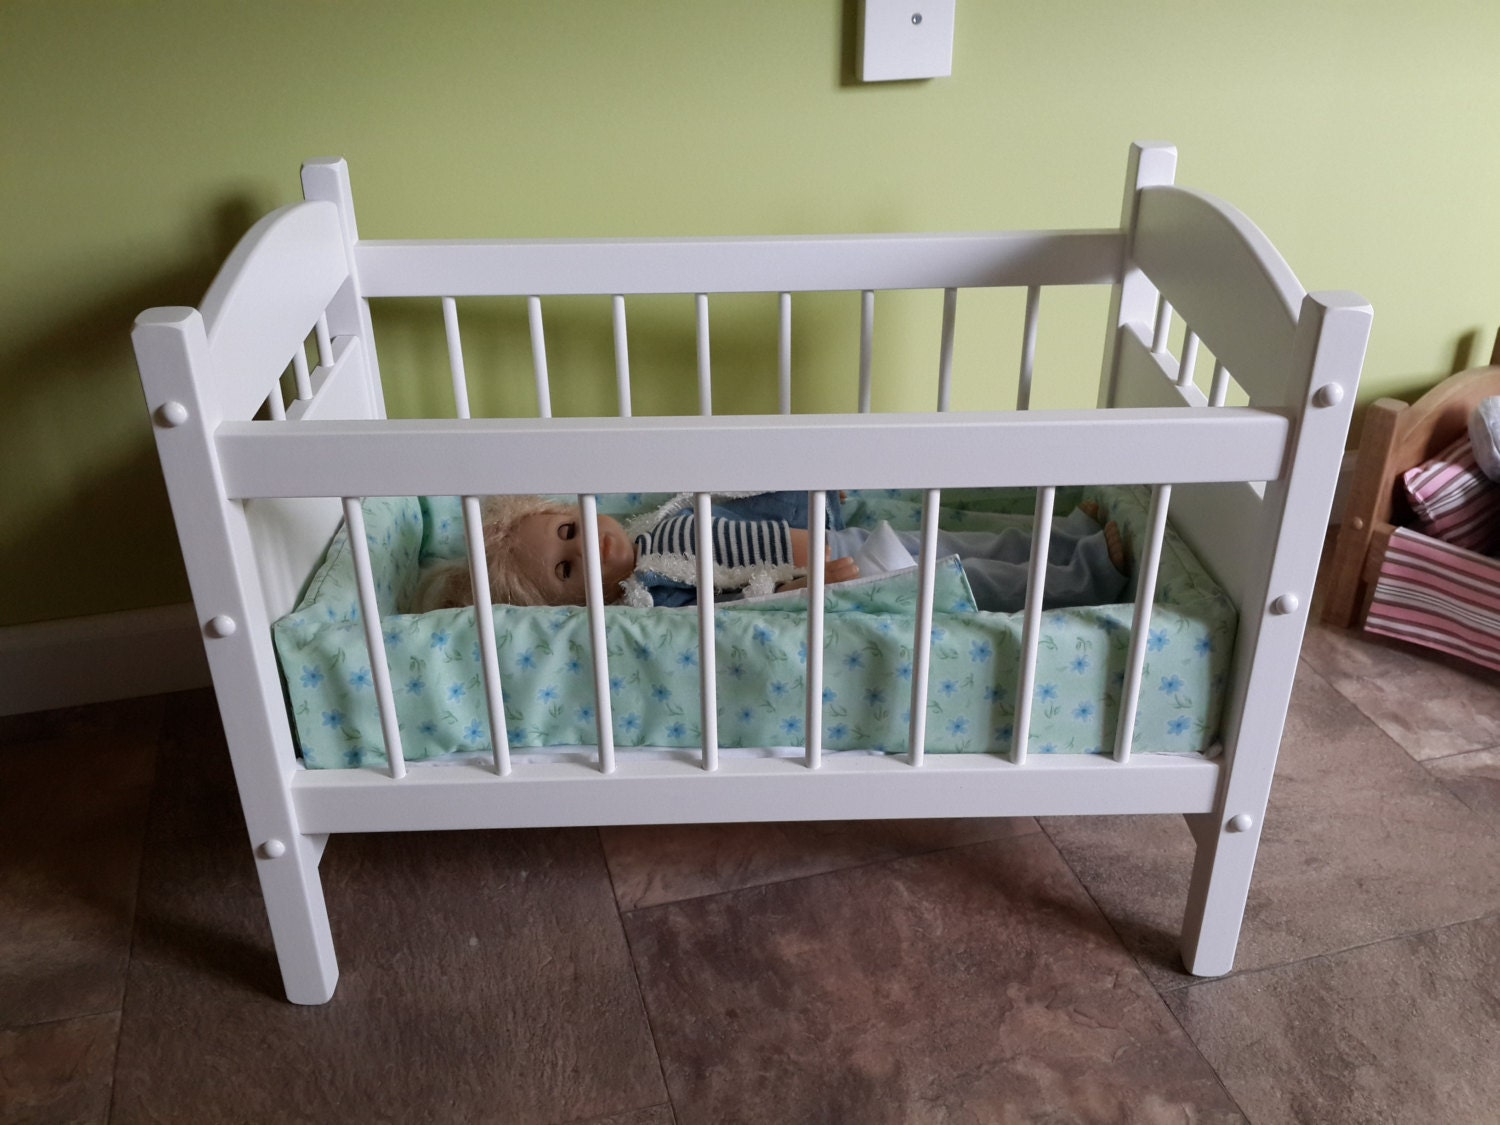 Reborn Baby Doll Crib Bed Wooden Toy Furniture By